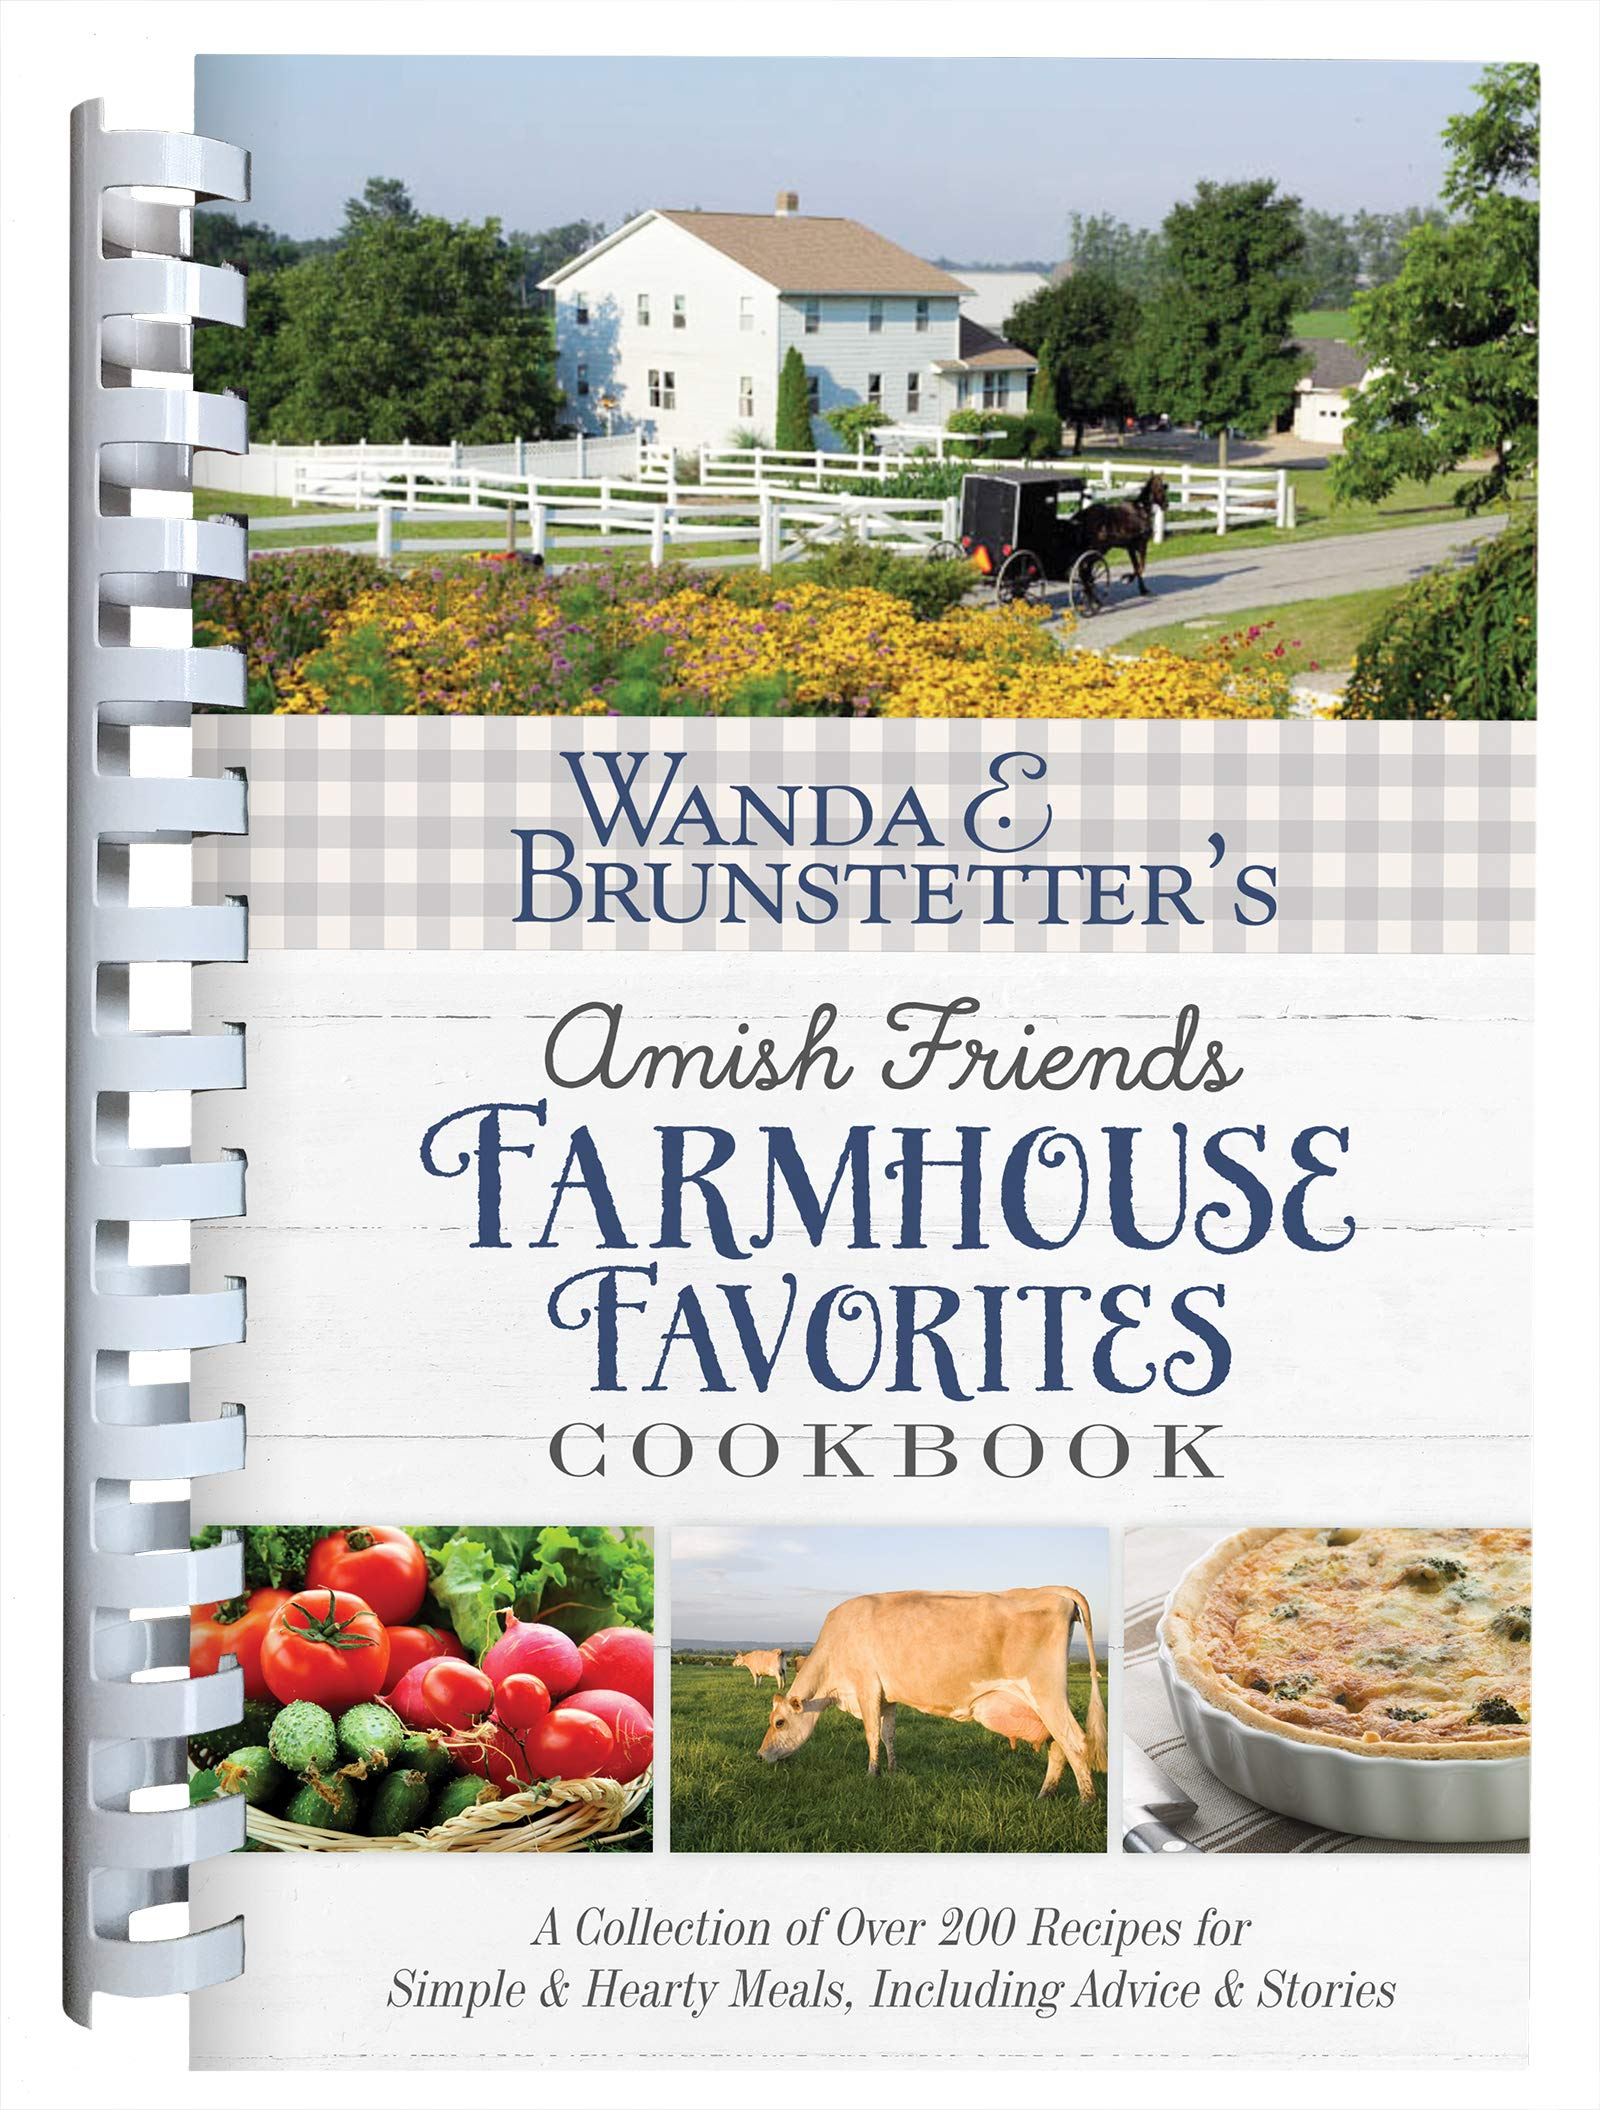 Wanda E. Brunstetter's Amish Friends Farmhouse Favorites Cookbook: A Collection of Over 200 Recipes for Simple and Hearty Meals, Including Advice and Stories {A Book Review}